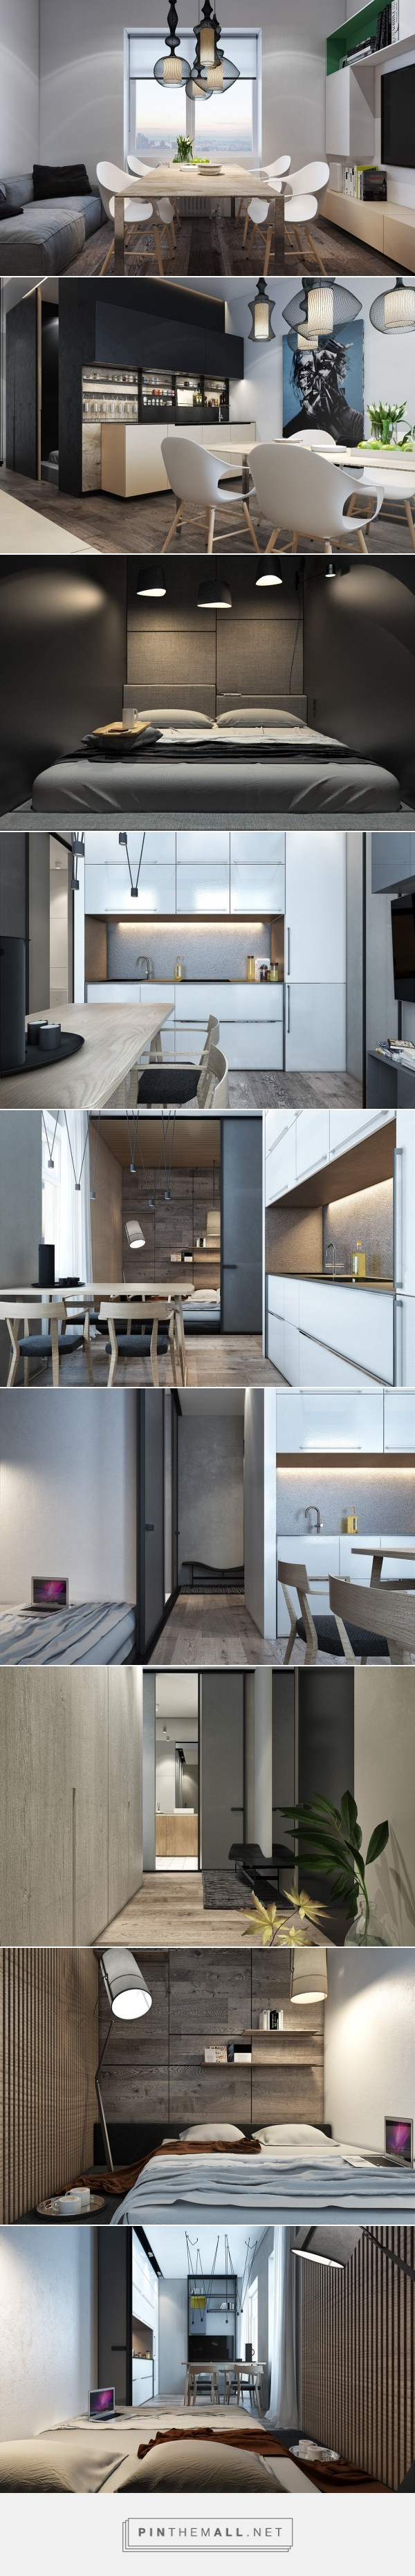 Designing For Small Spaces Beautiful Micro Lofts Created Via - Designing for small spaces 3 beautiful micro lofts